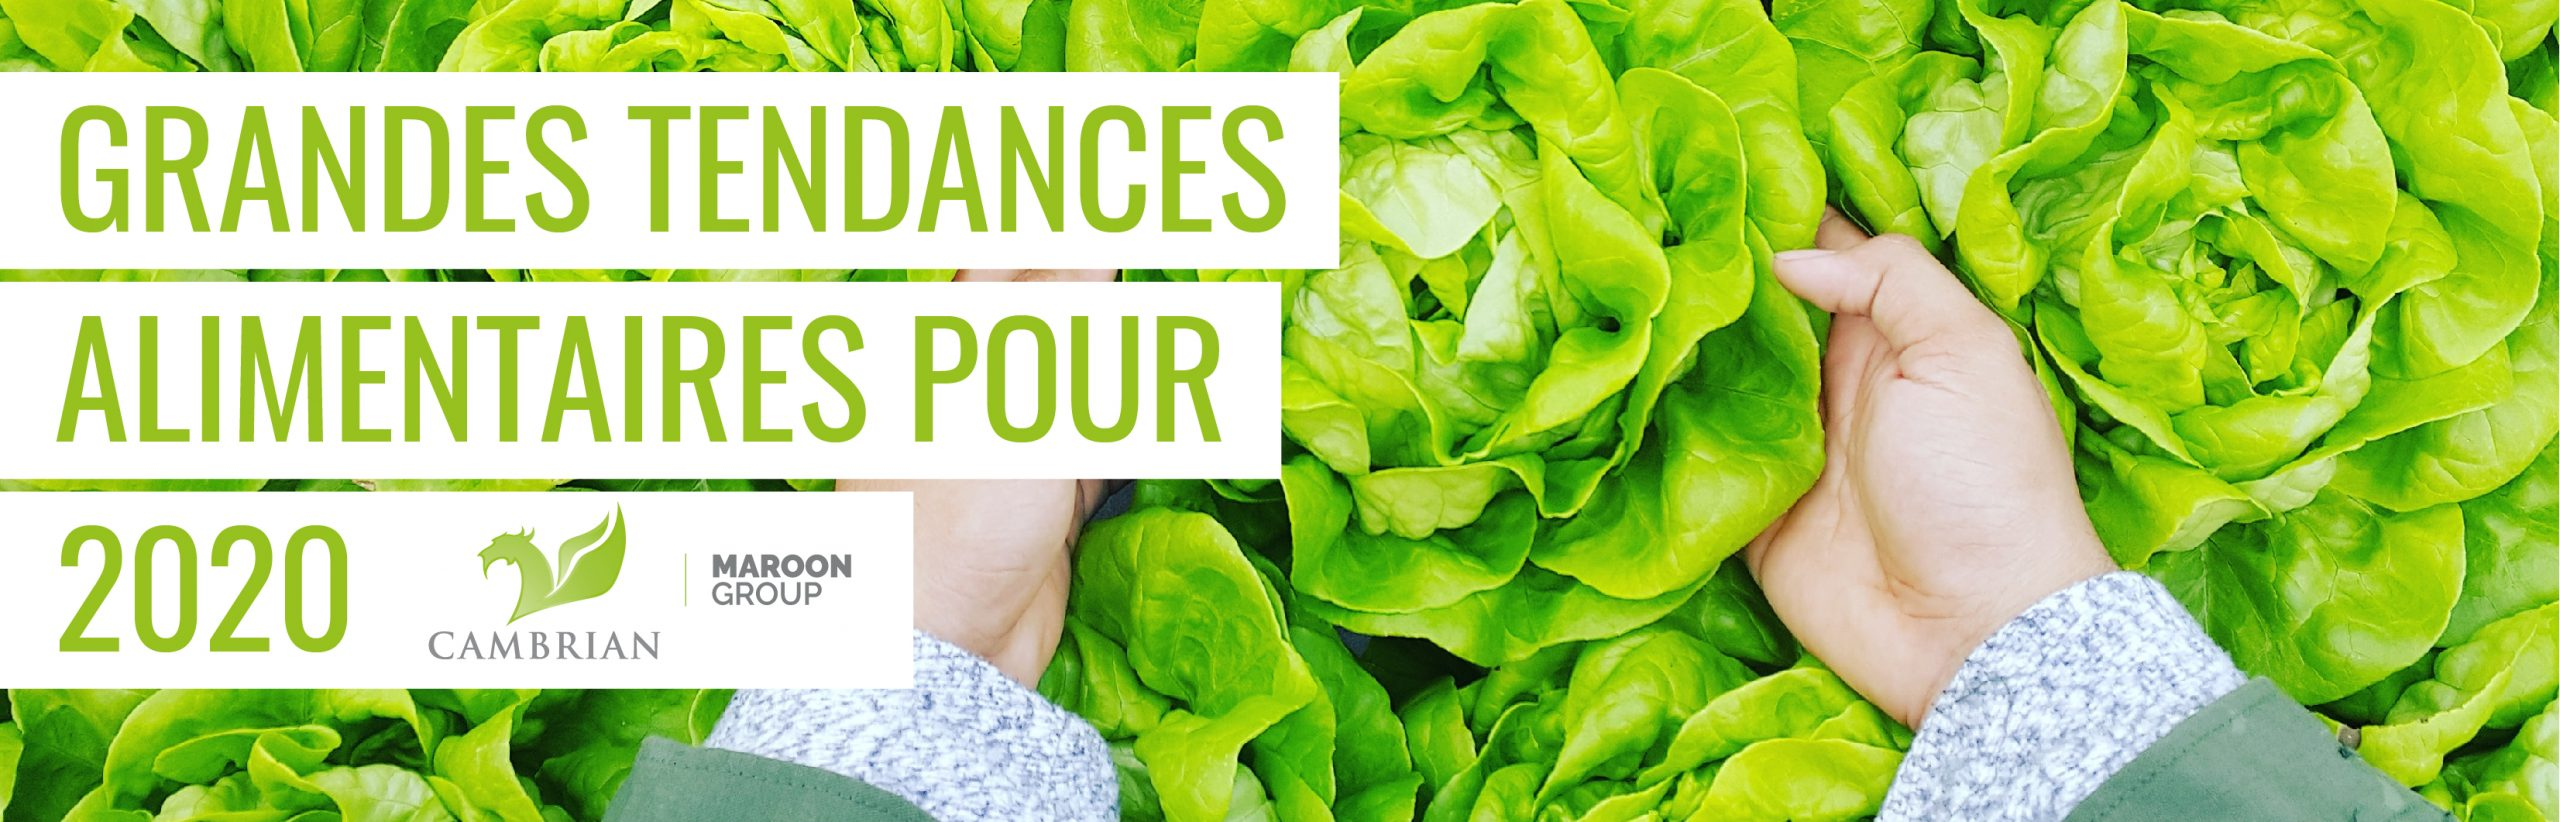 GRANDES TENDANCES ALIMENTAIRES POUR 2020 over two hands holding a head of lettuce among many other heads of lettuce